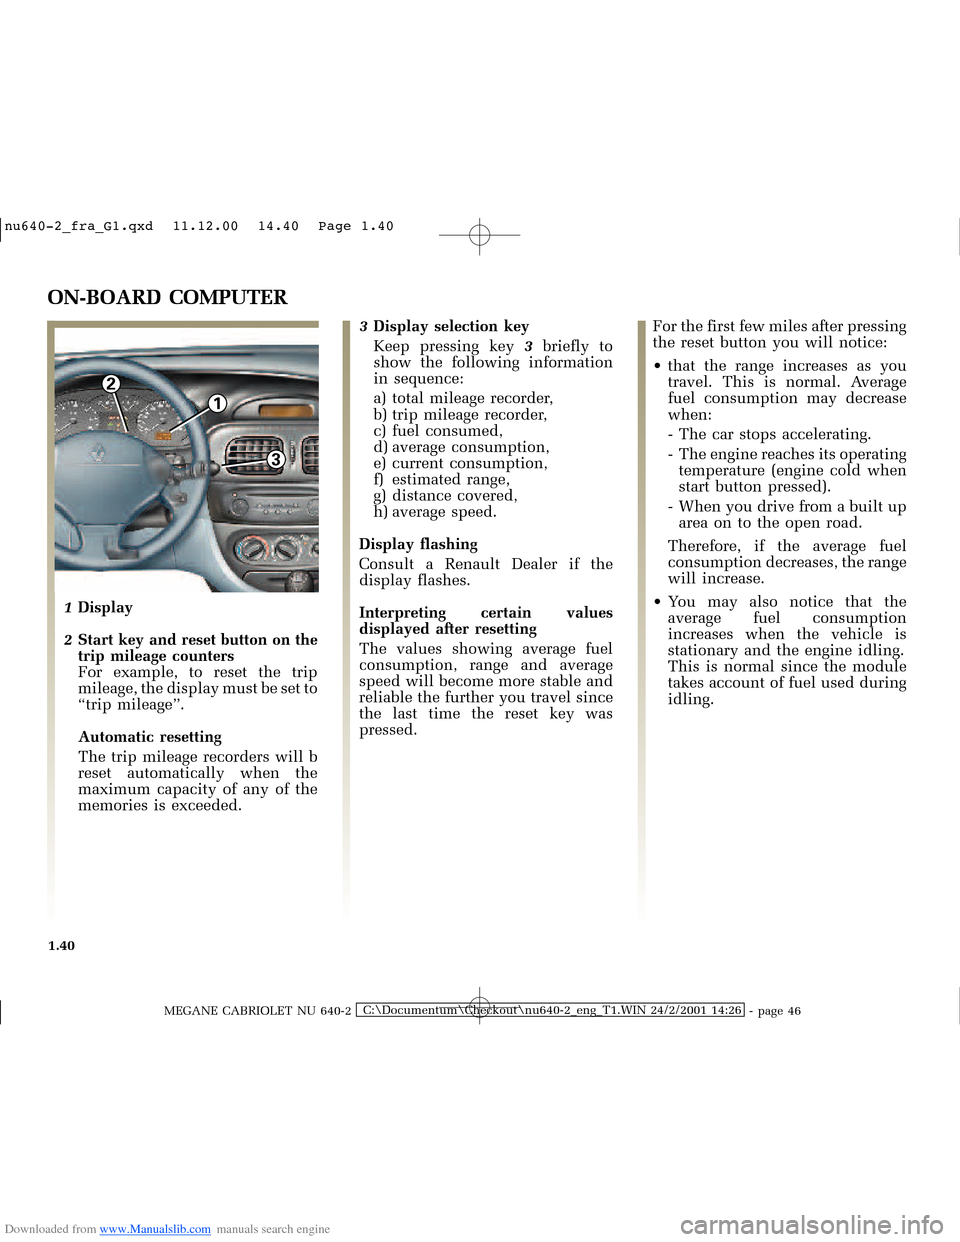 RENAULT MEGANE 2000 X64 / 1.G Owners Manual, Page 45